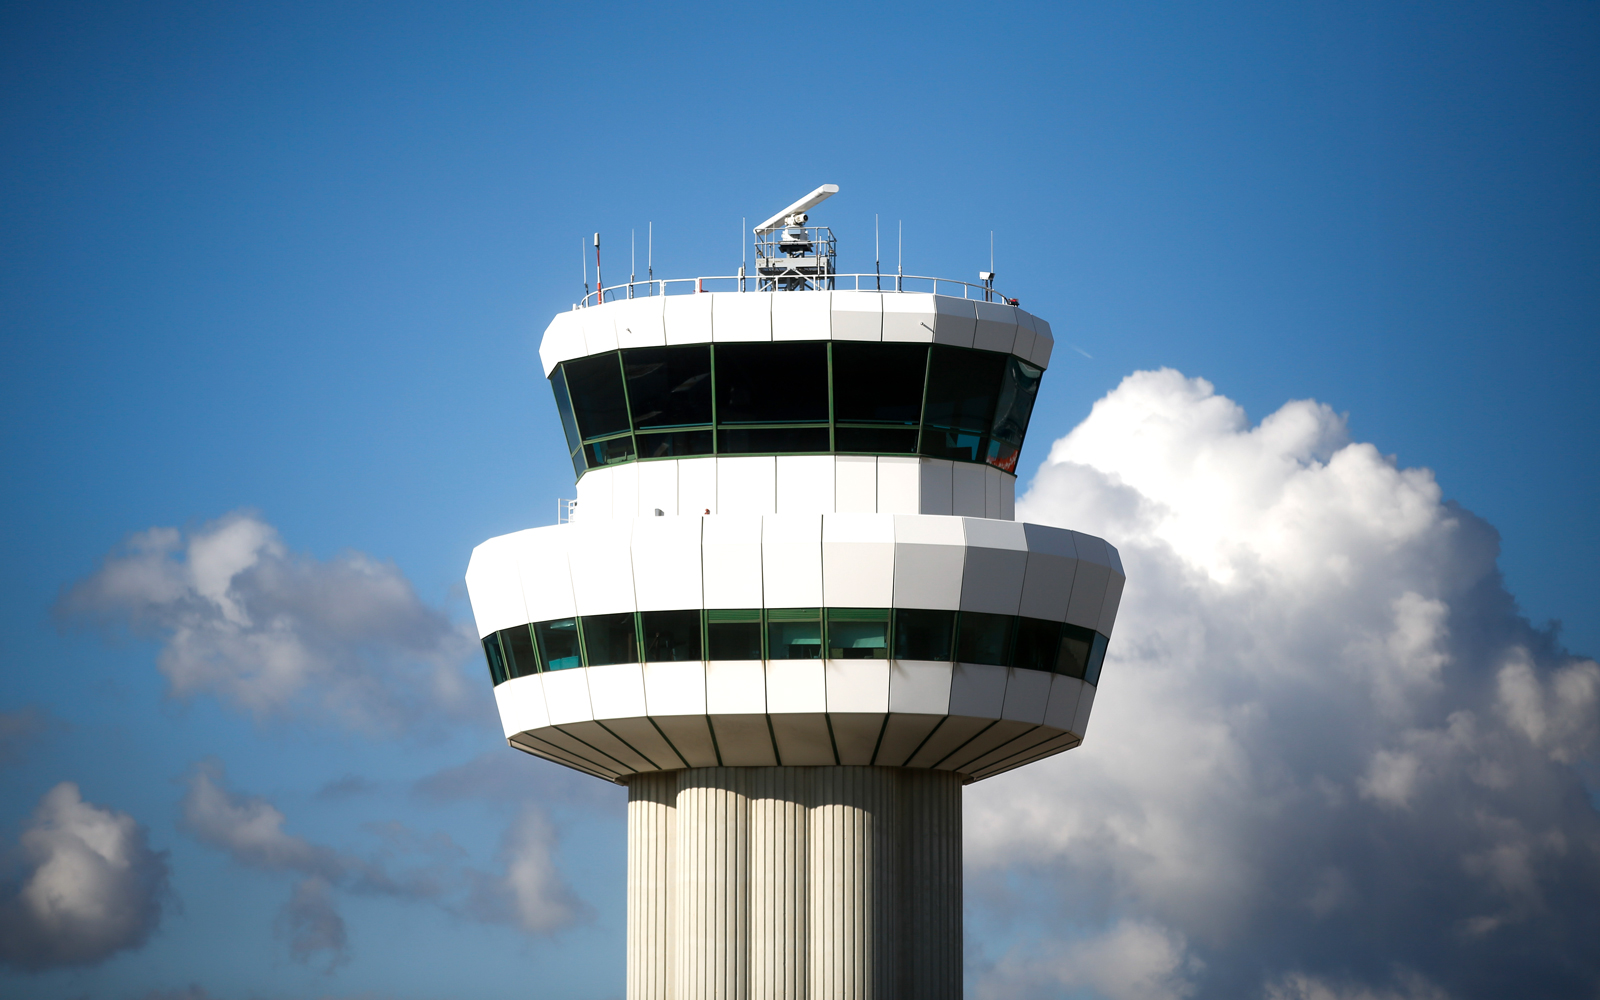 London Gatwick Air Traffic Control Tower